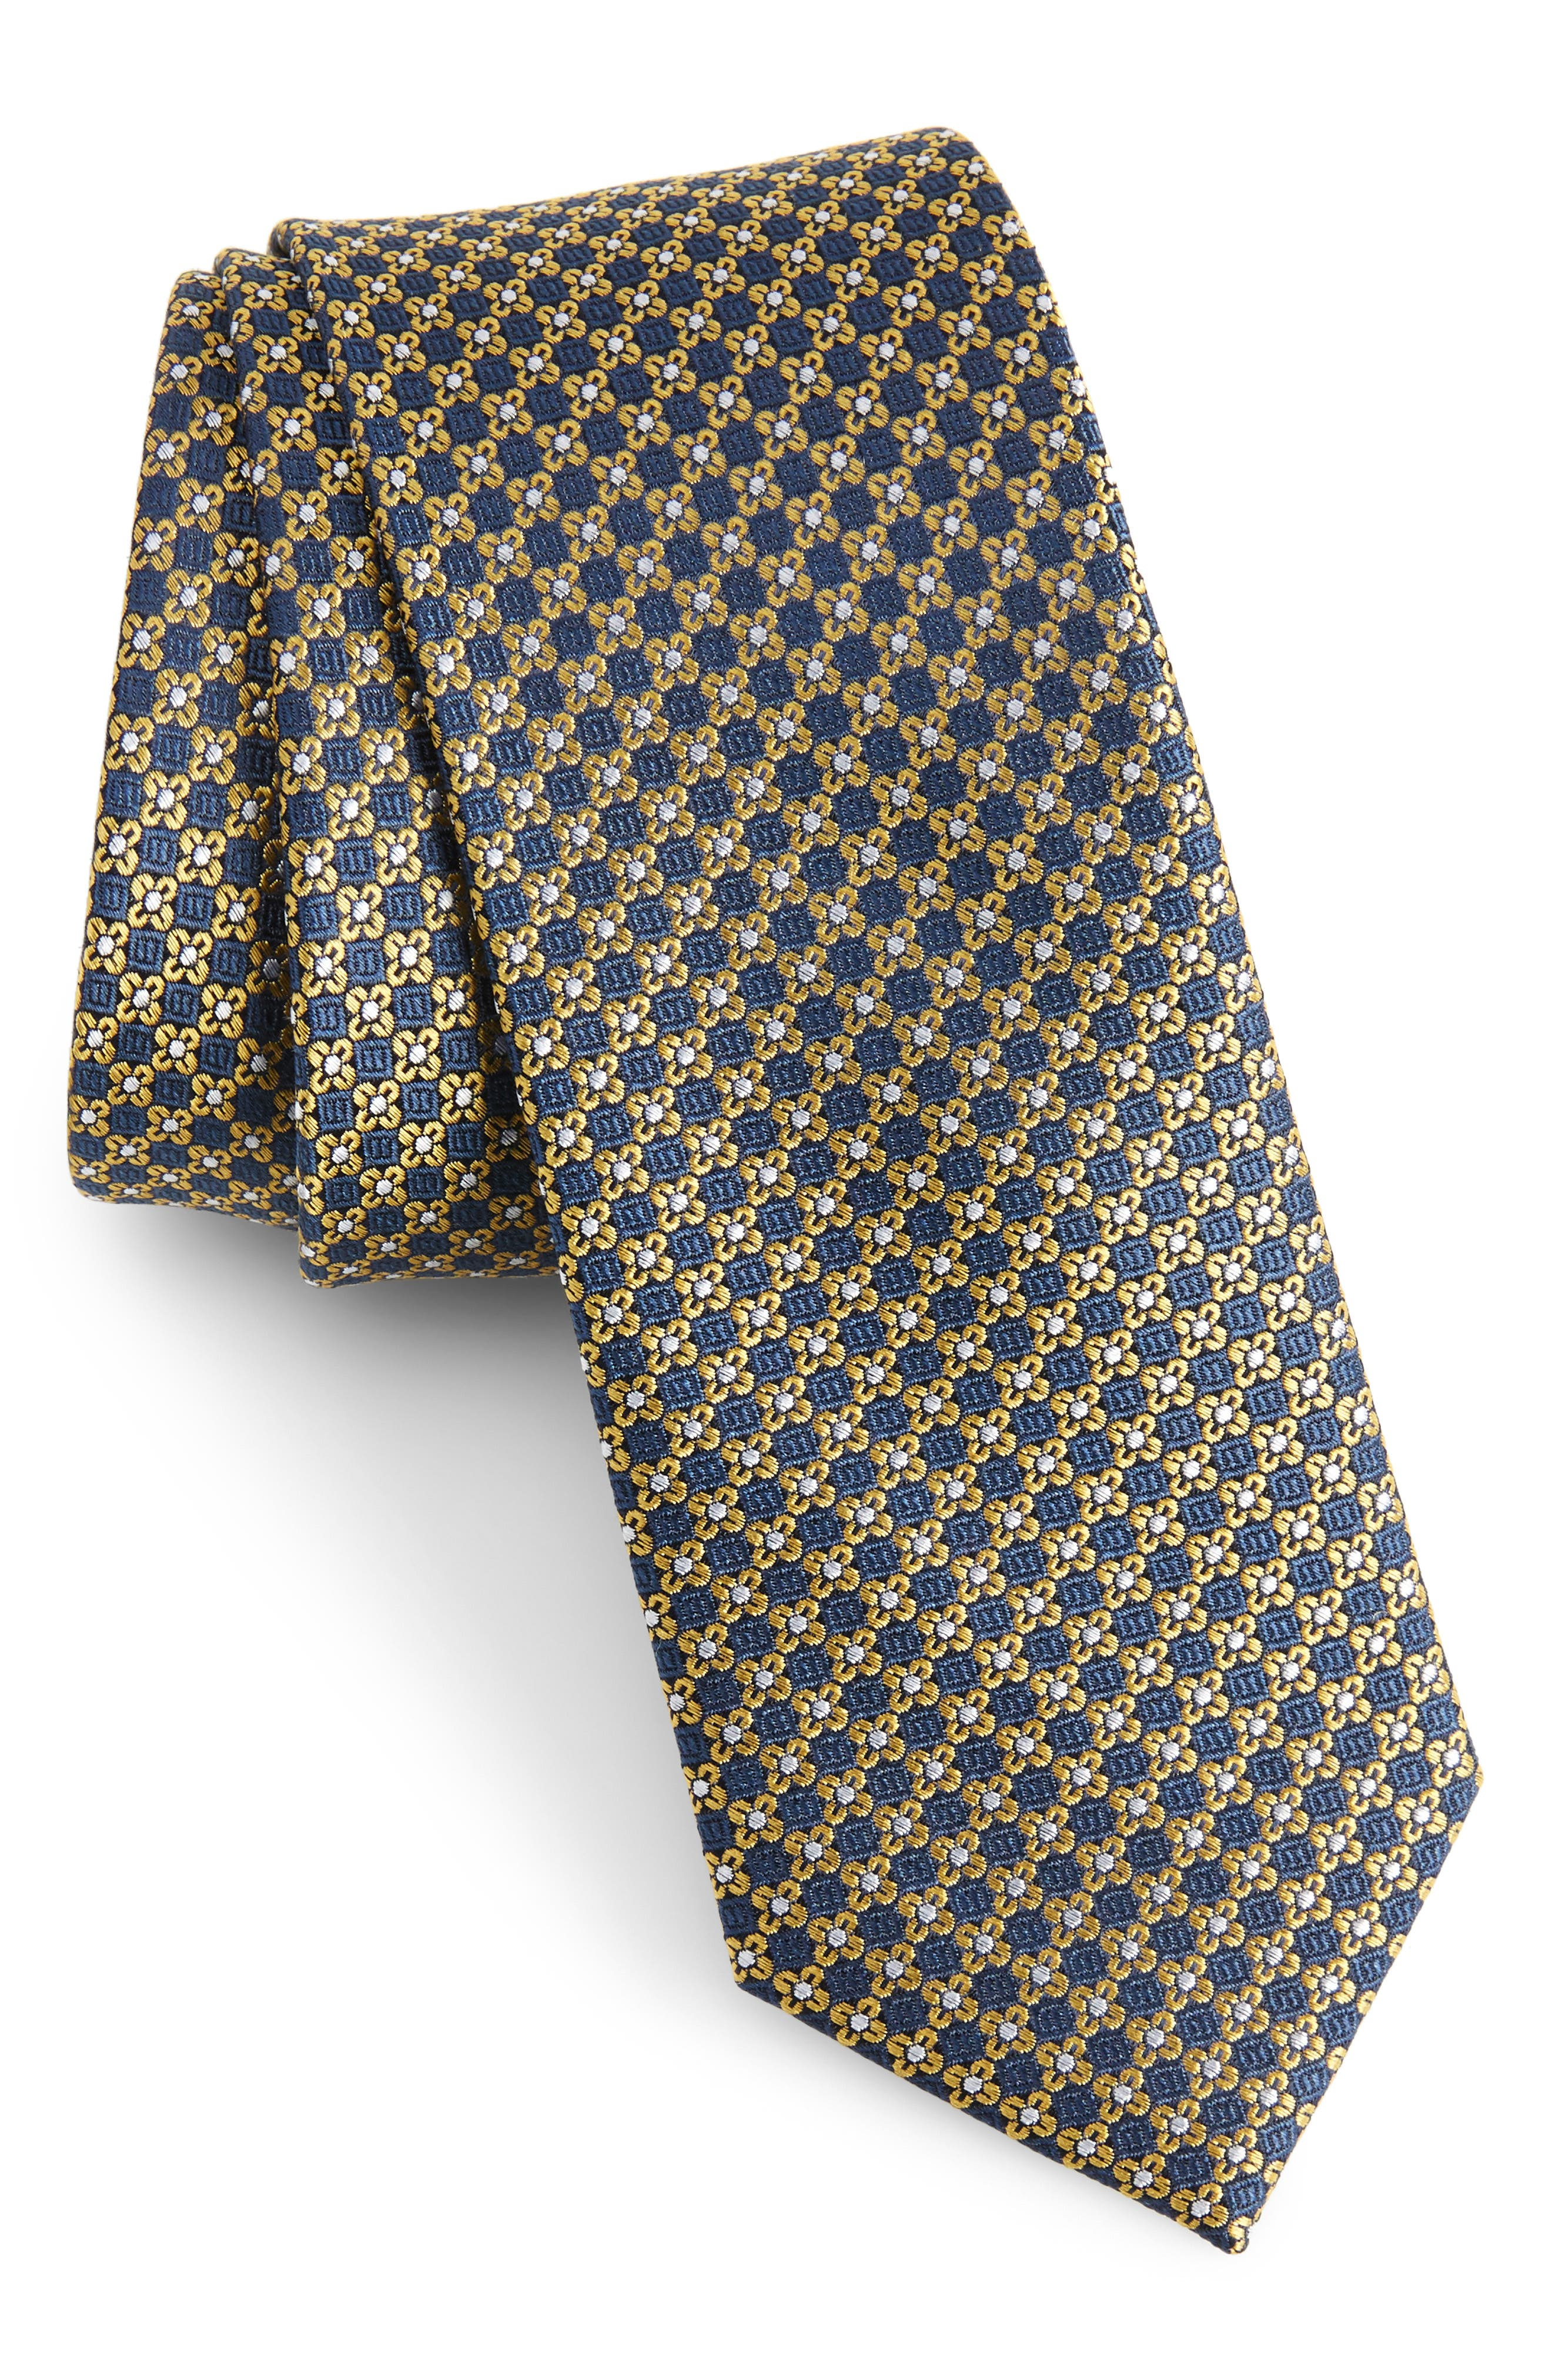 Floral Network Silk Skinny Tie,                             Main thumbnail 1, color,                             Yellow